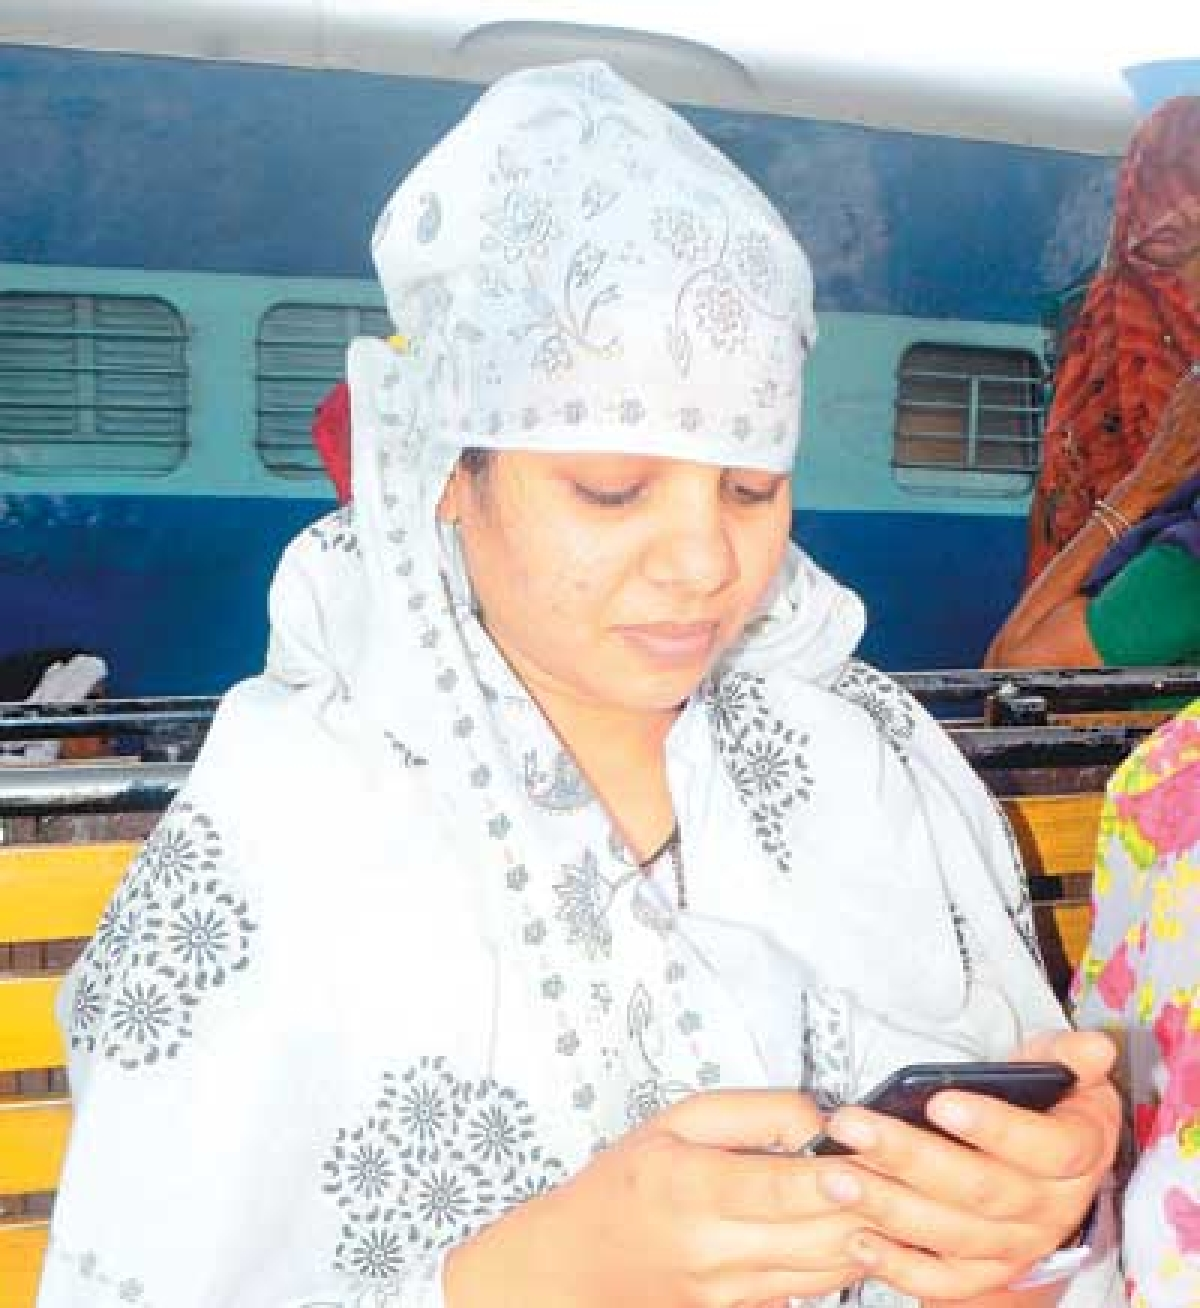 Free Wi-Fi at Bhopal Railway Station – Slow, unpredictable, not accessible from all platforms, complain passengers